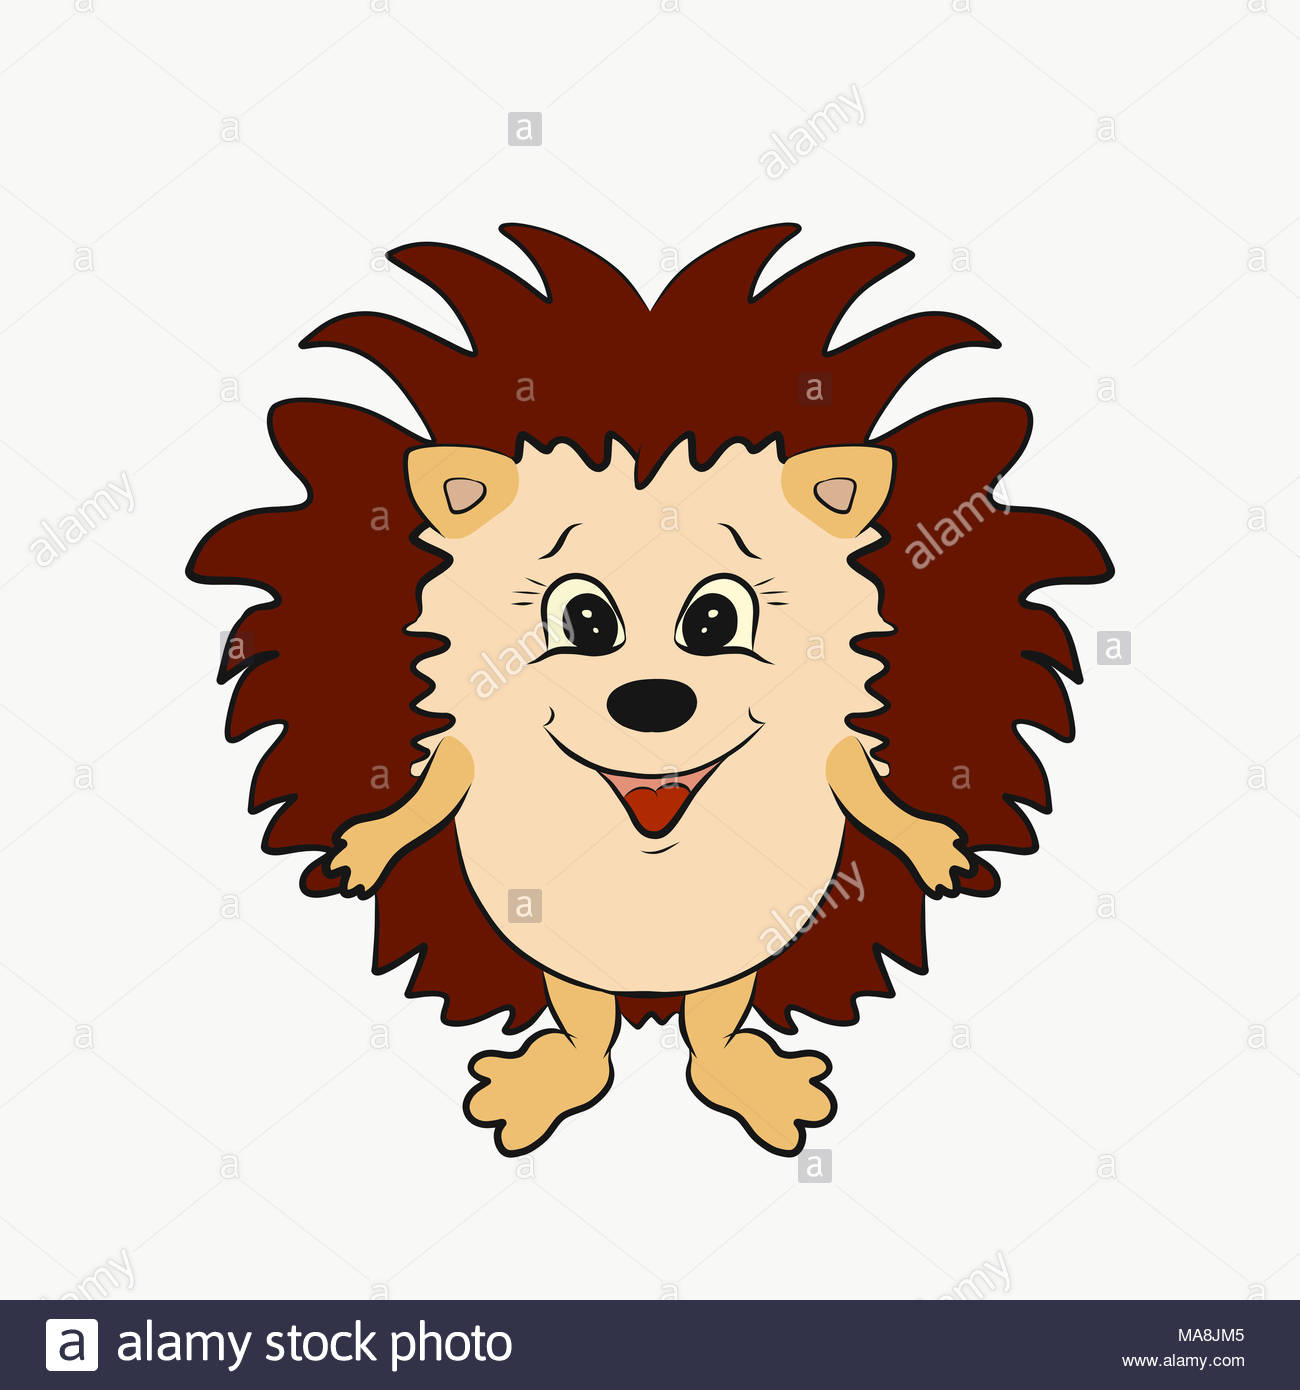 Little funny smiling hedgehog with big thorns - Stock Image